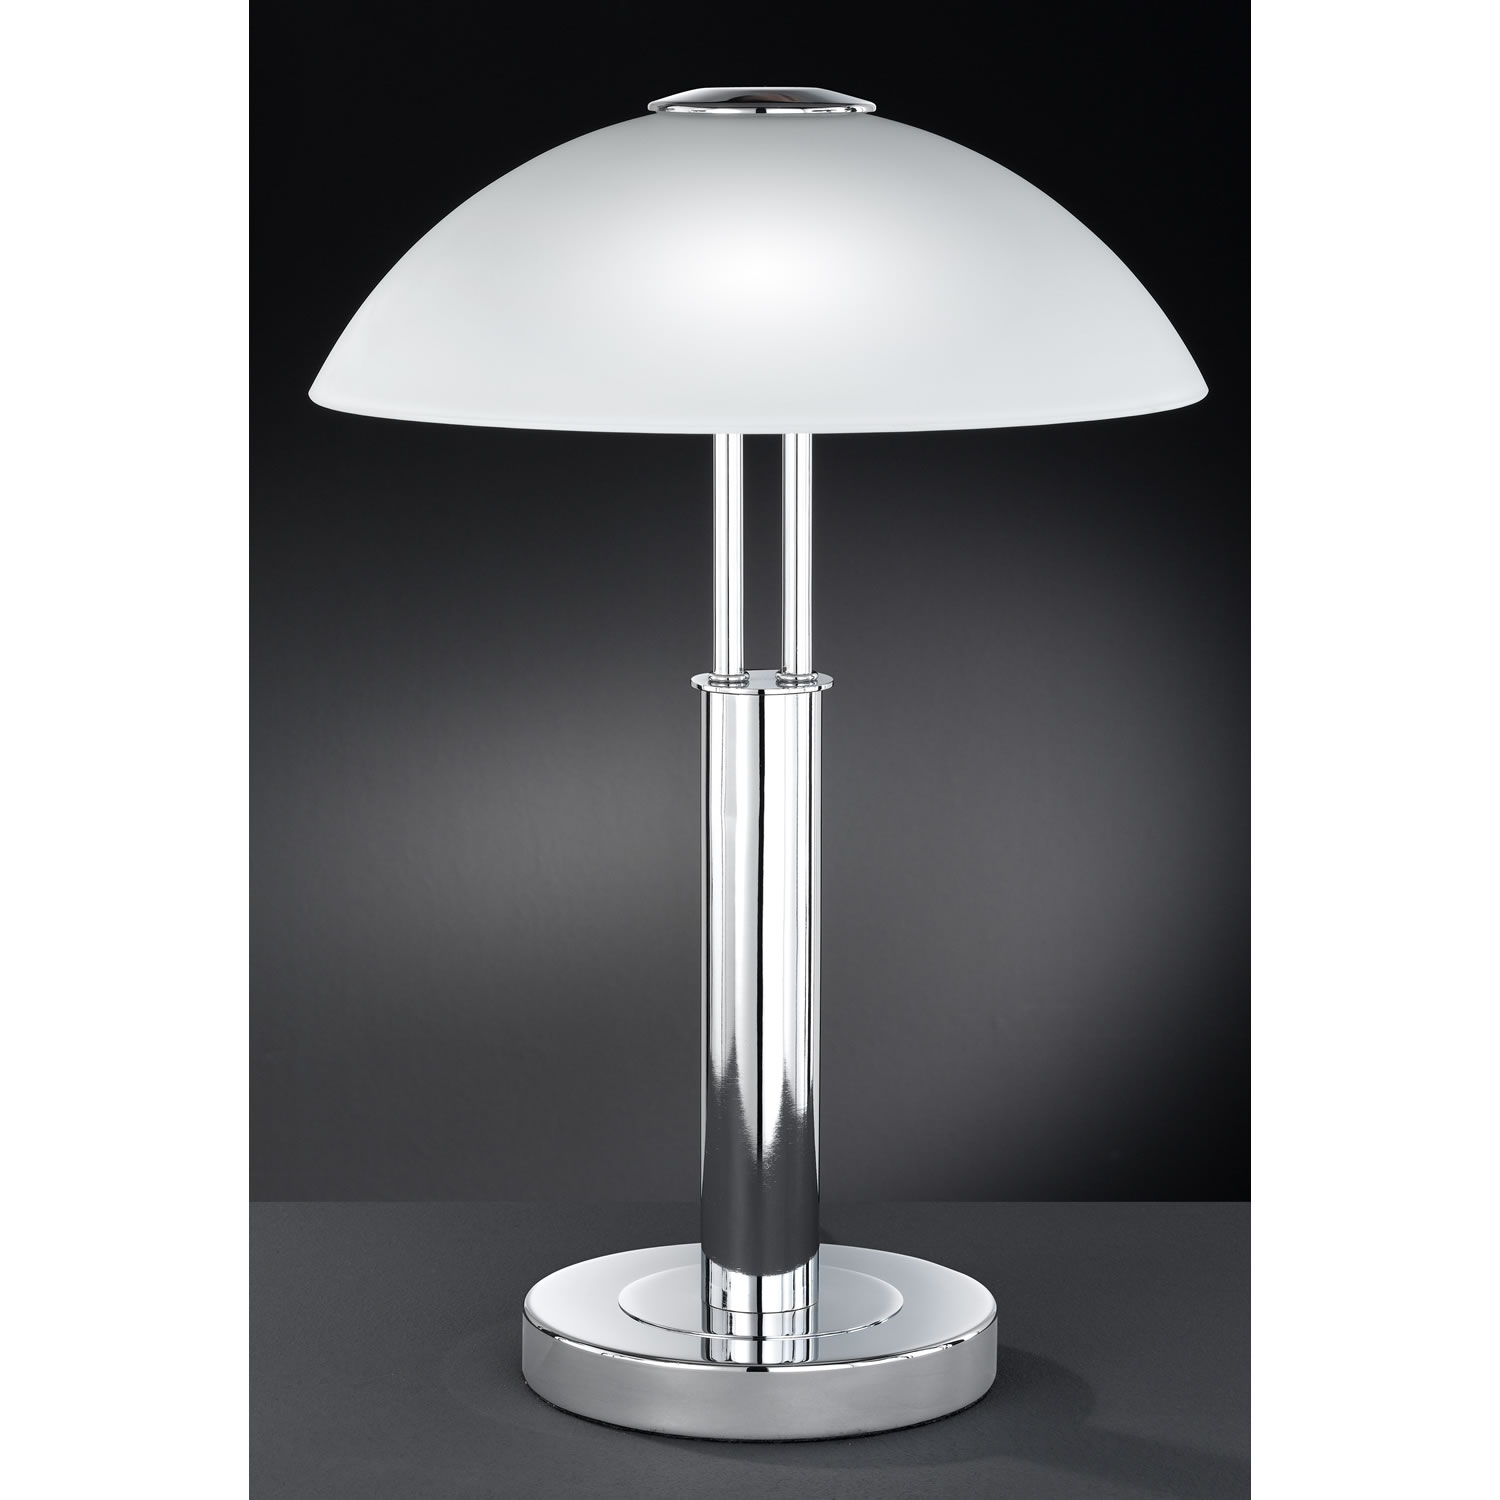 glass touch lamp photo - 1